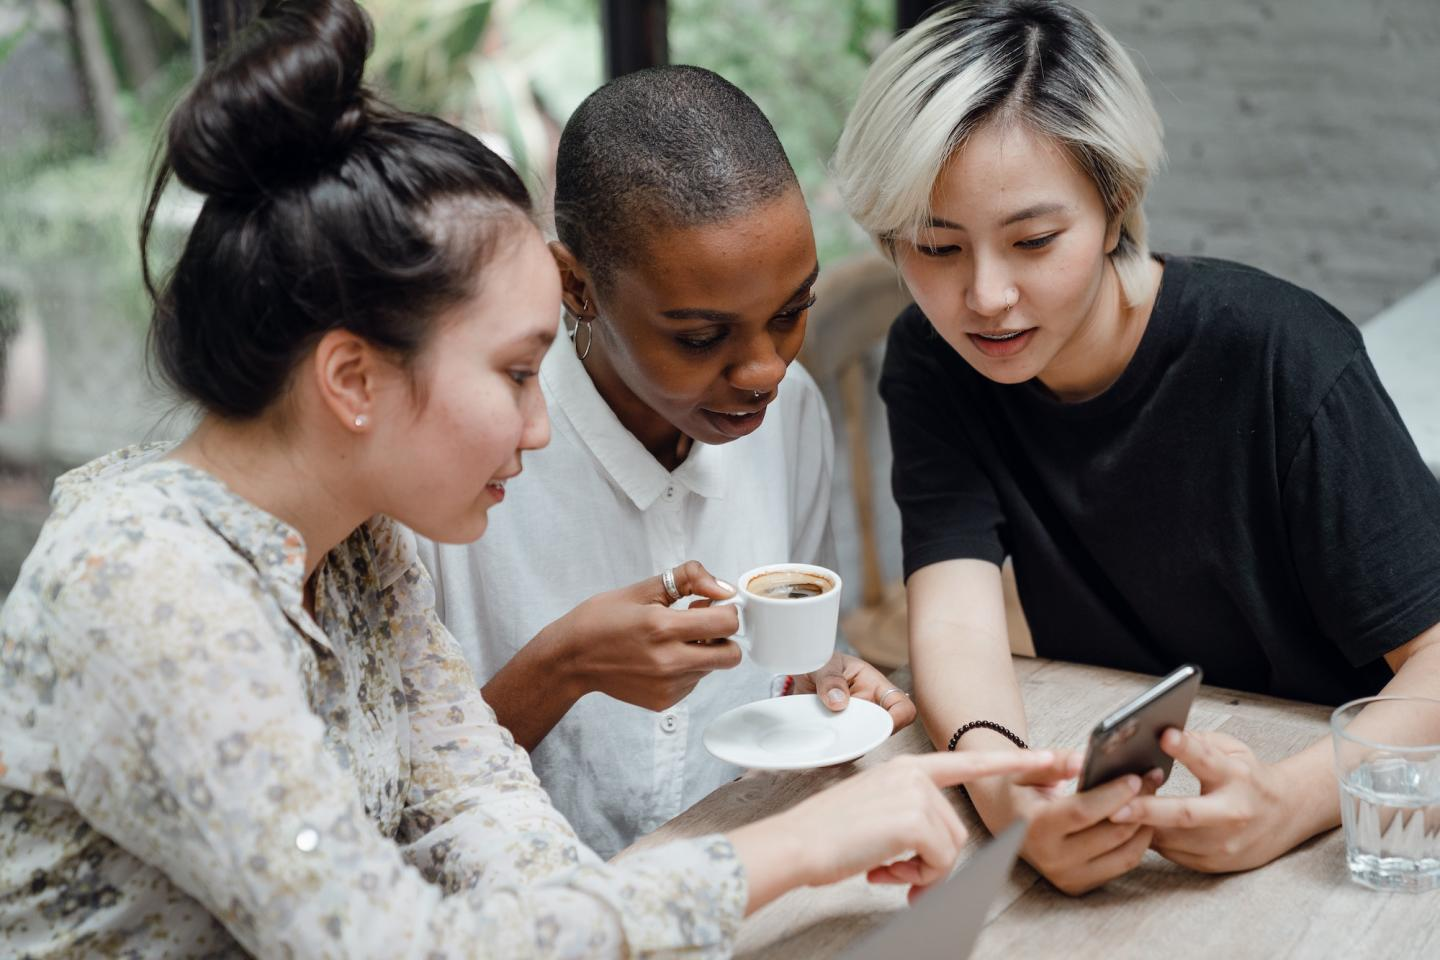 3 women drinking coffee and looking at a phone